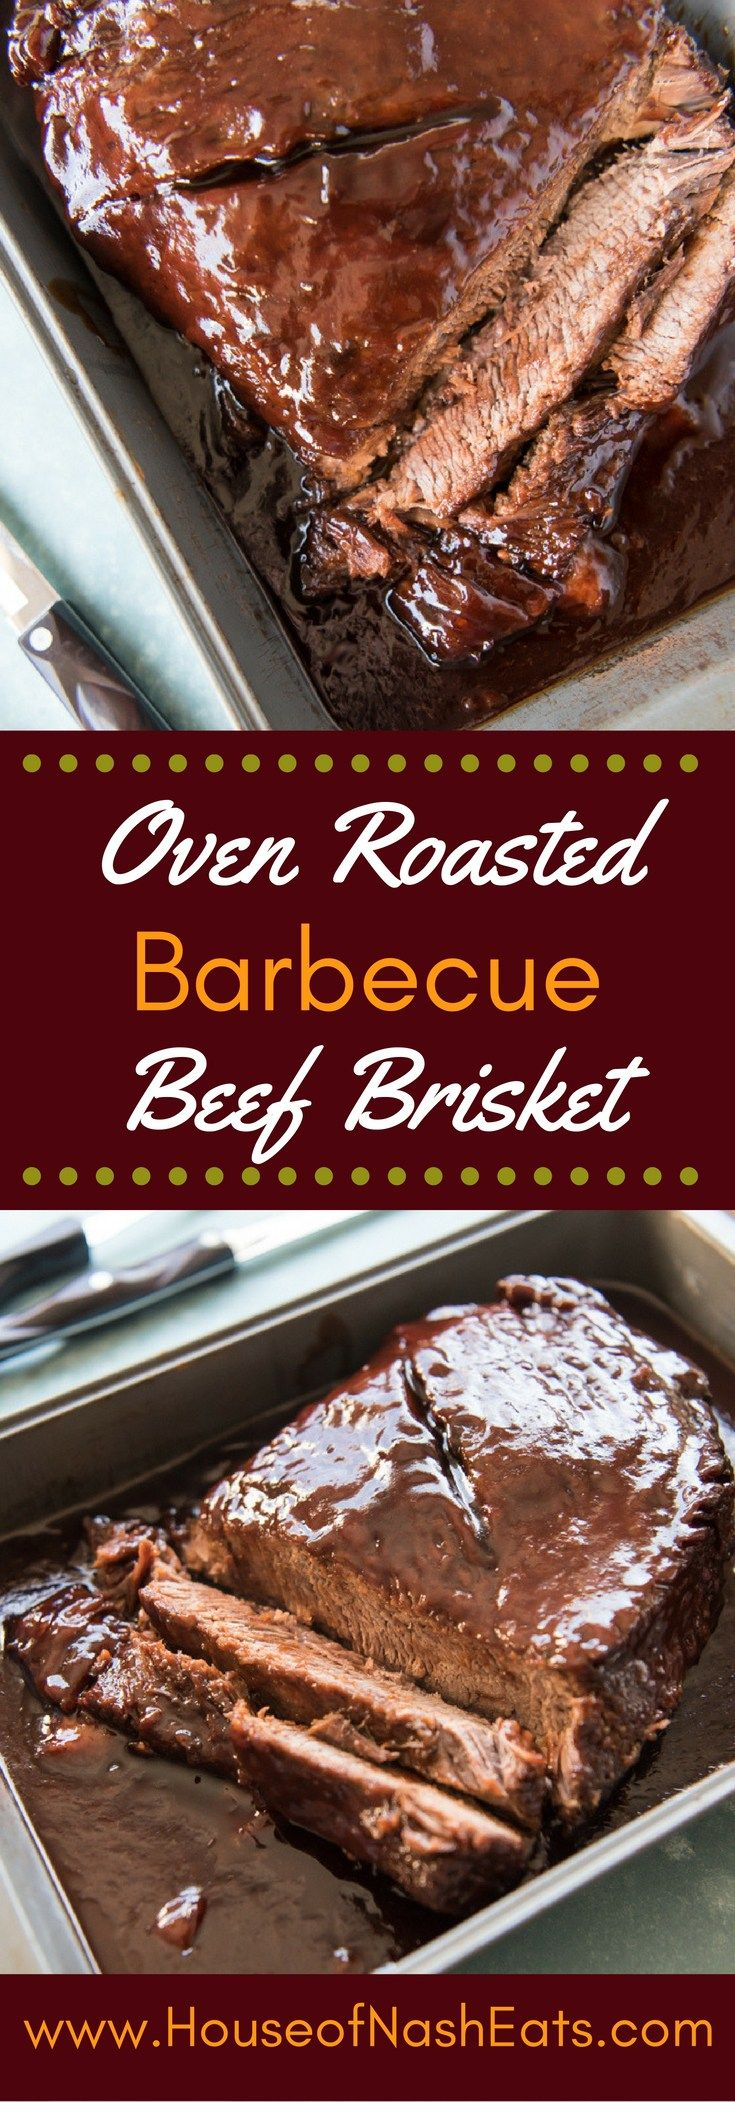 Slow Roasted Oven BBQ Beef Brisket is so tender and juicy, with a sweet & smokey hickory barbecue sauce, no one will care the meat wasn't smoked for hours!